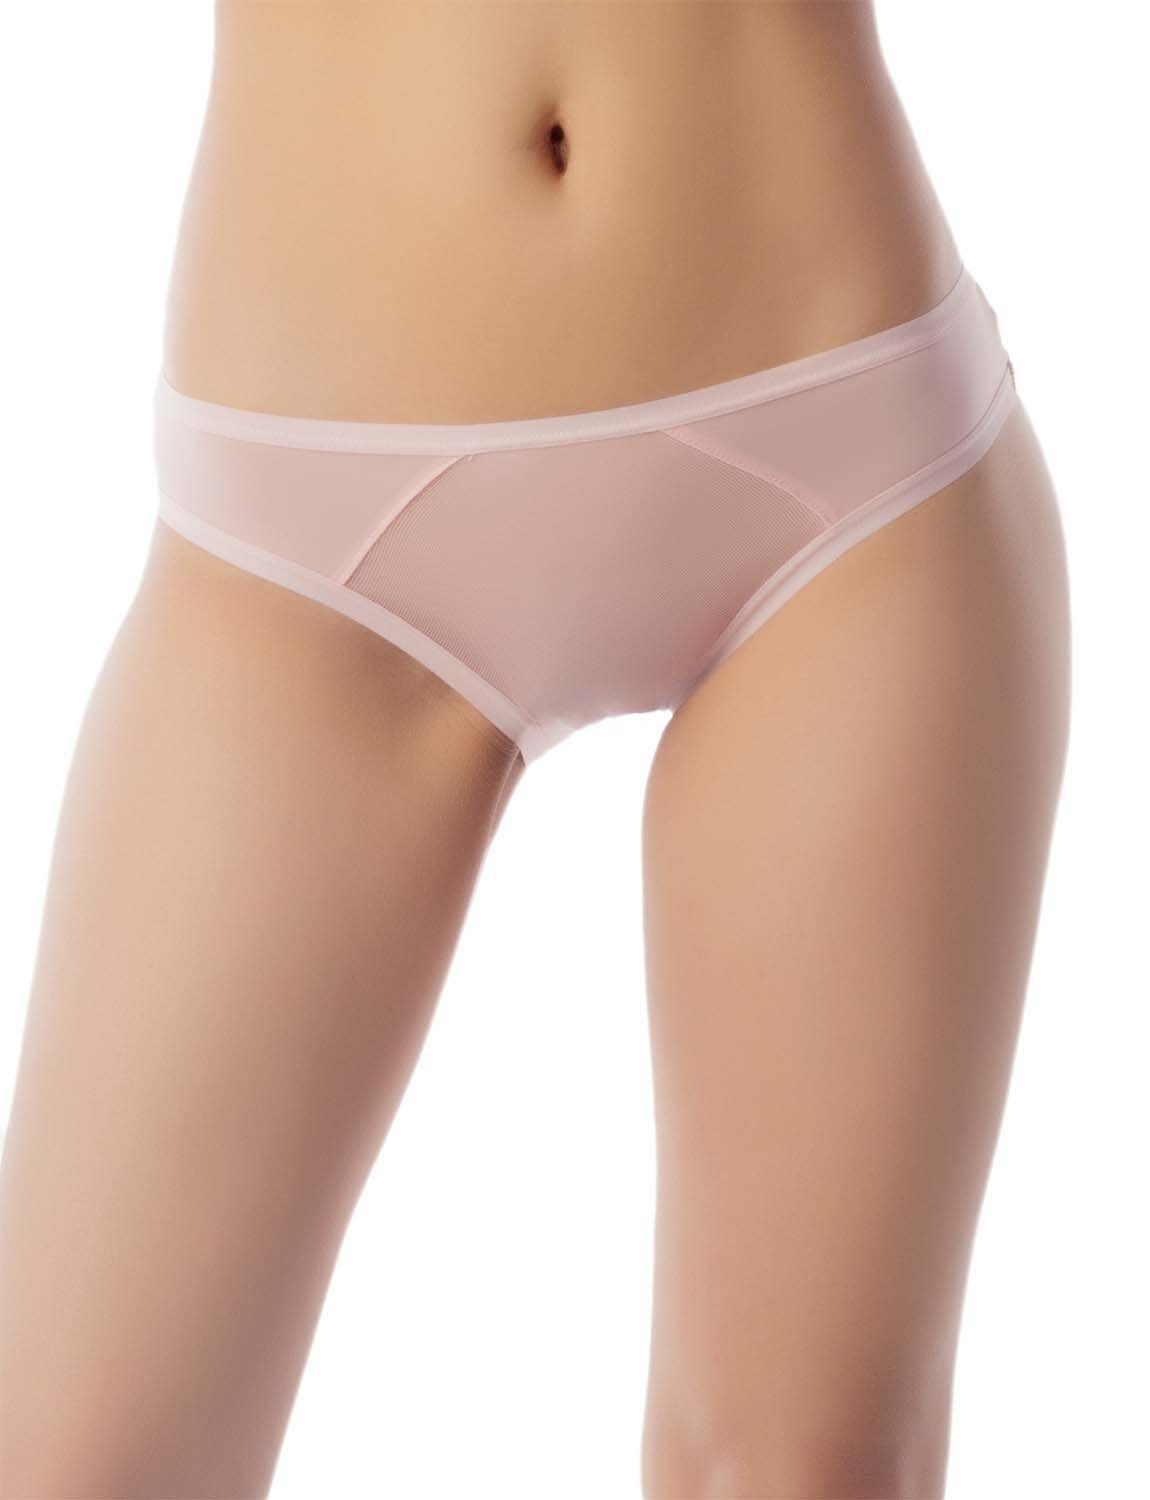 Women's Sheer See-Through Underwear Fashionable Mesh Low Rise Brief Panty, Size: M, Pink